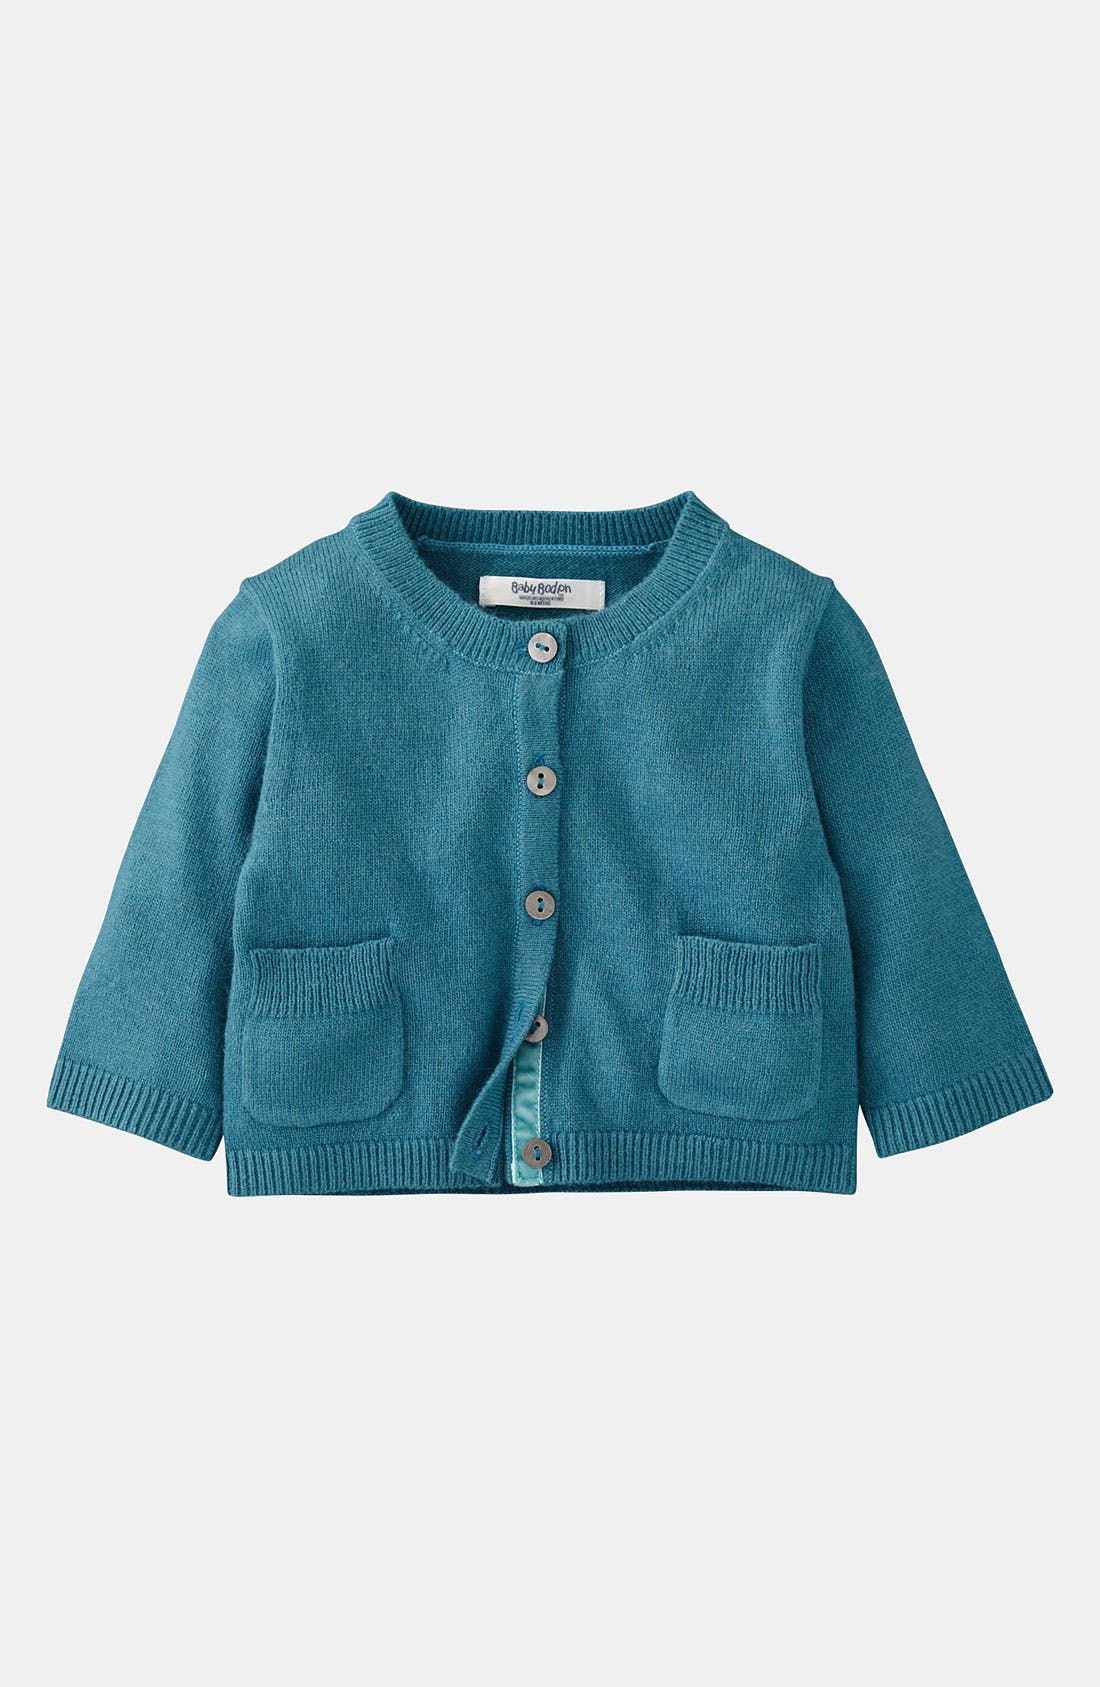 Main Image - Mini Boden 'Baby' Cardigan (Infant)